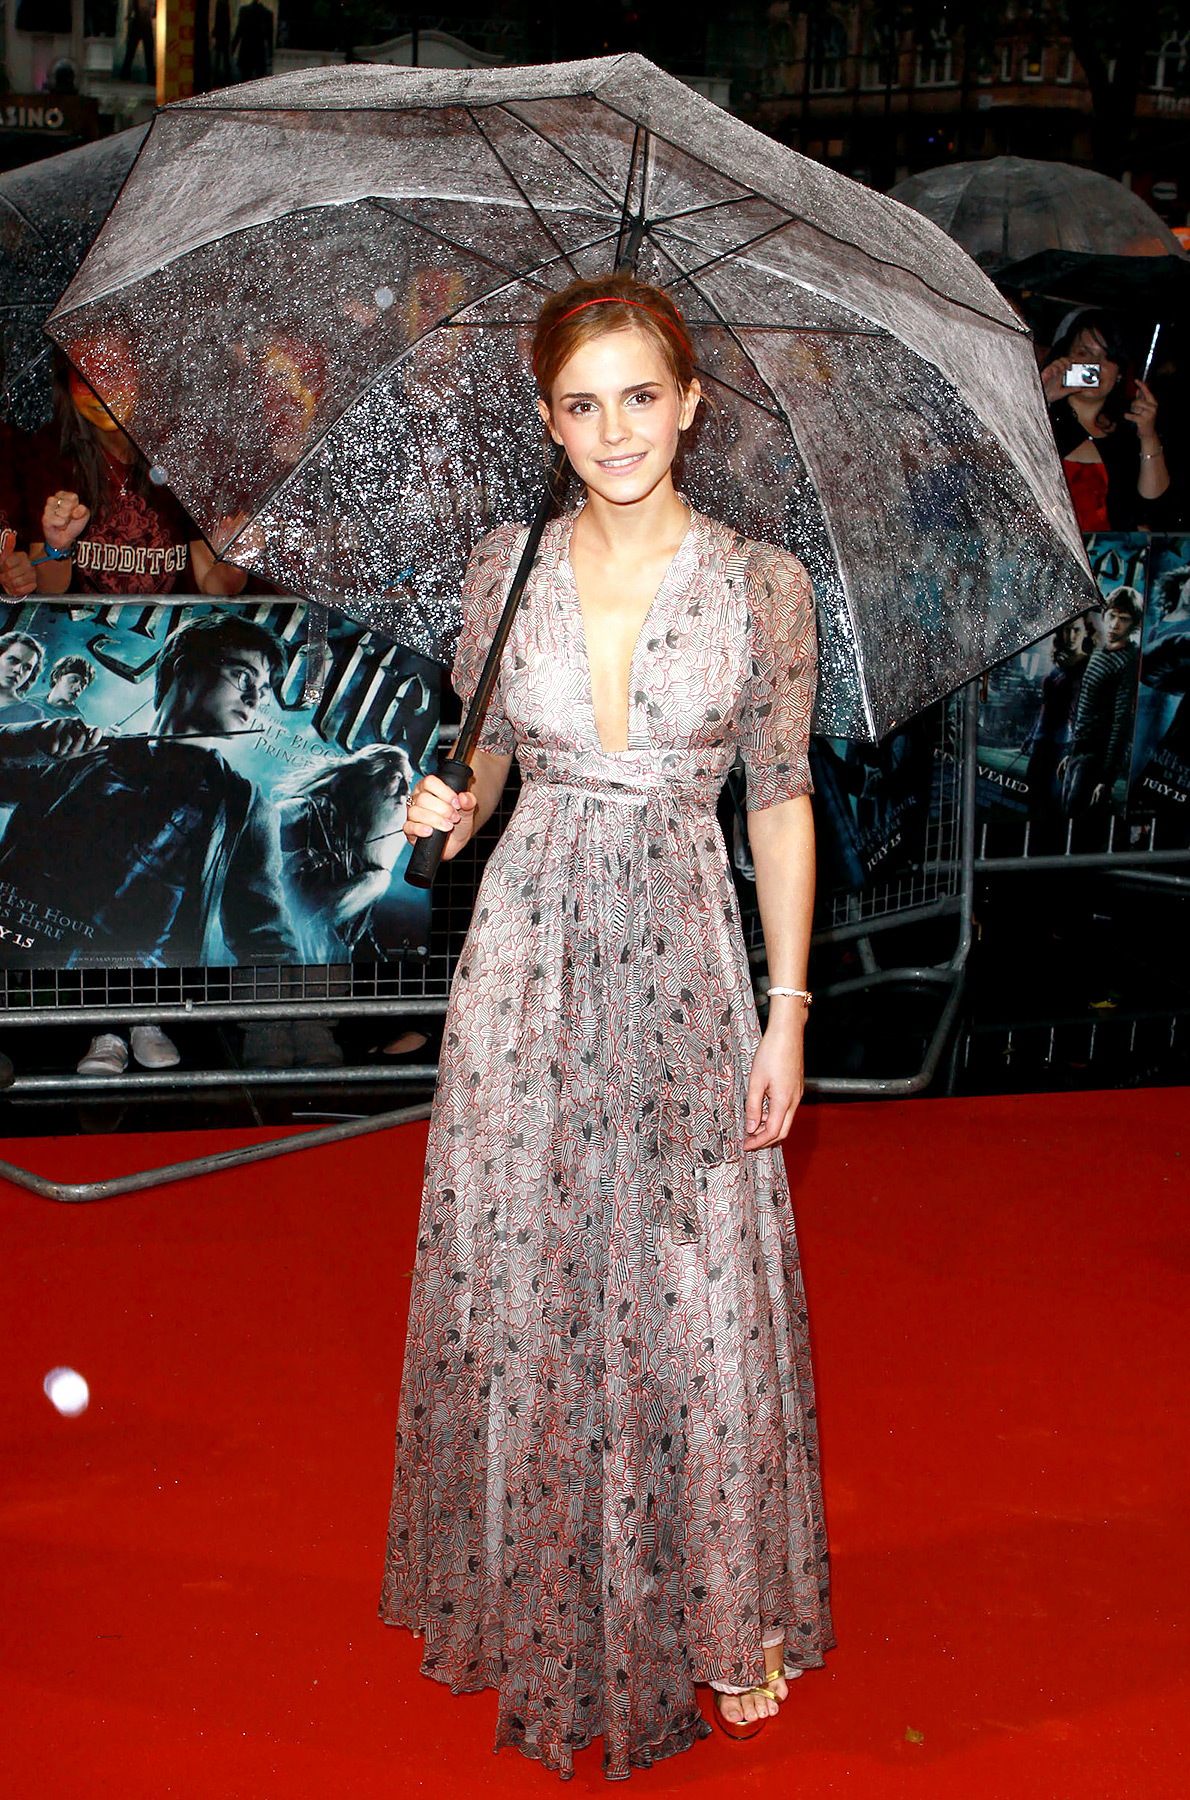 The actress braved the rain at the London premiere of Harry Potter and the Half-Blood Prince , still looking as put-together as ever with an umbrella in hand. The rising star went vintage for the occasion, wearing a sleeved wrap-waist dress from the 1970s which she told Vogue she found in a shop near her home.